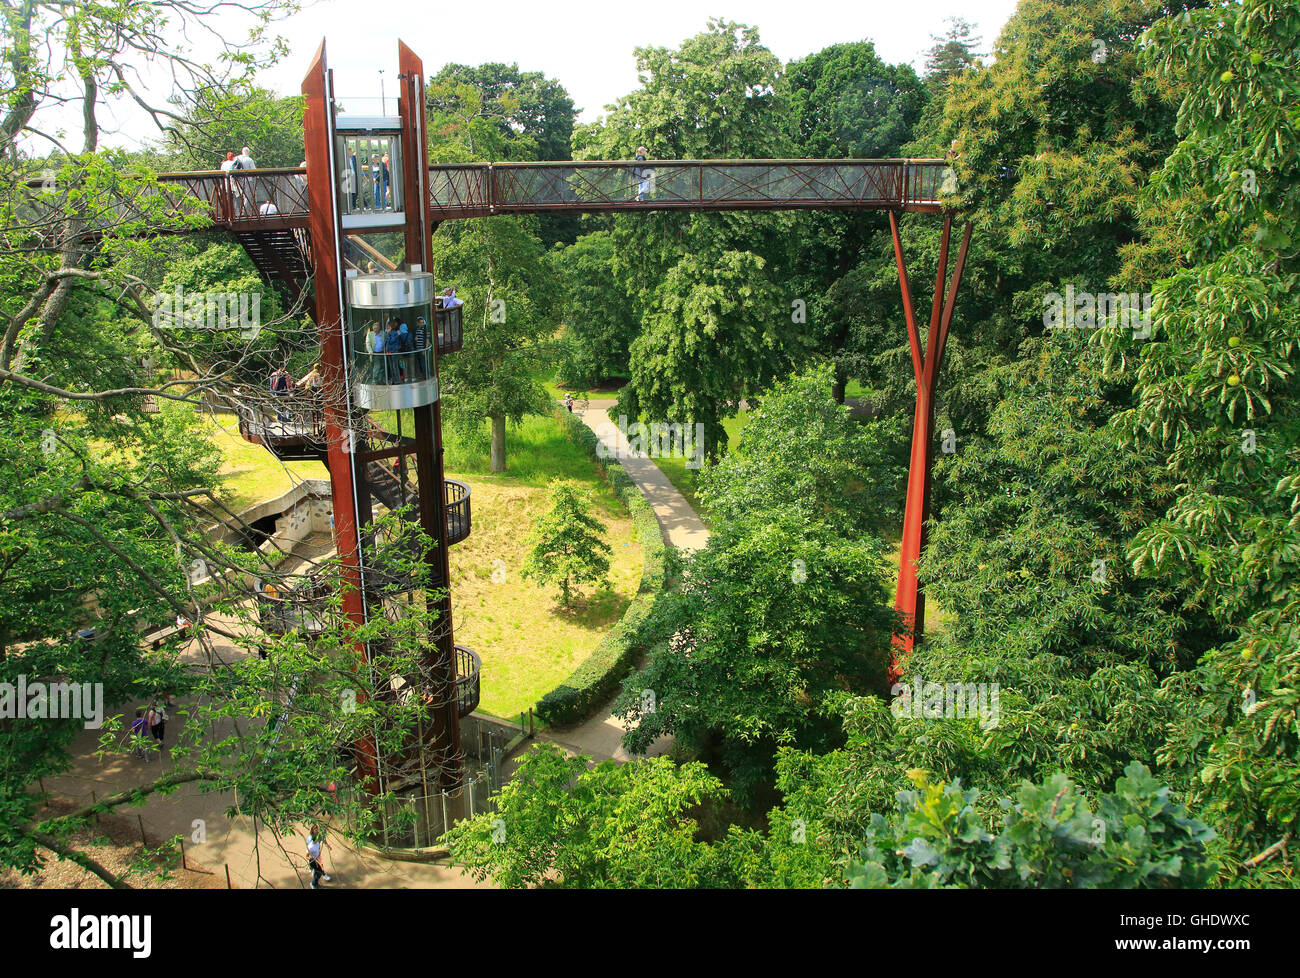 Xstrata Treetop Walkway, Royal Botanic Gardens, Kew, Londres, Angleterre, Royaume-Uni Photo Stock